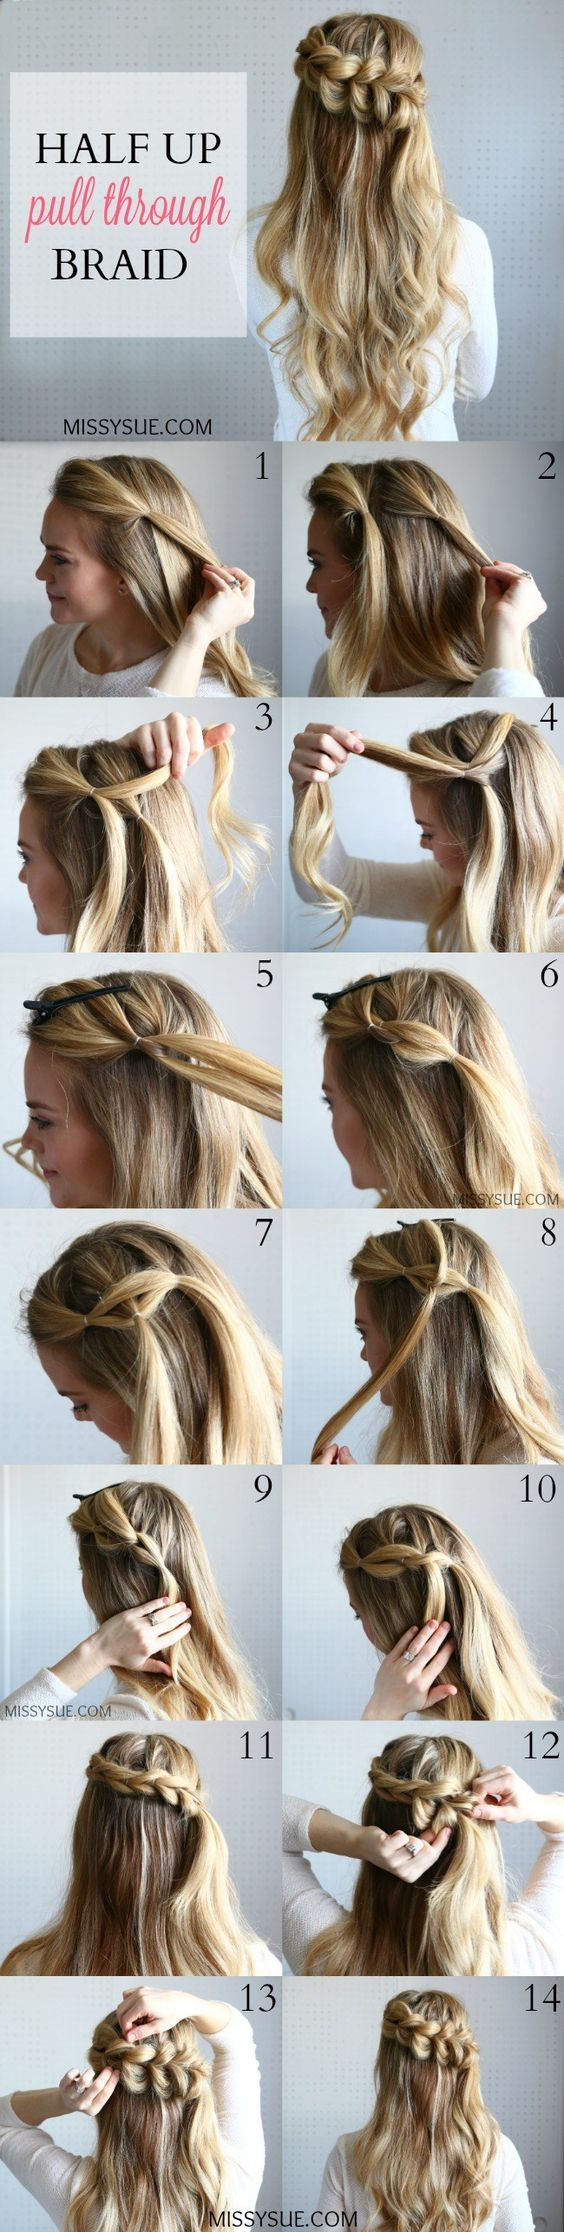 Half up pull through braid more blonde pinterest hair style